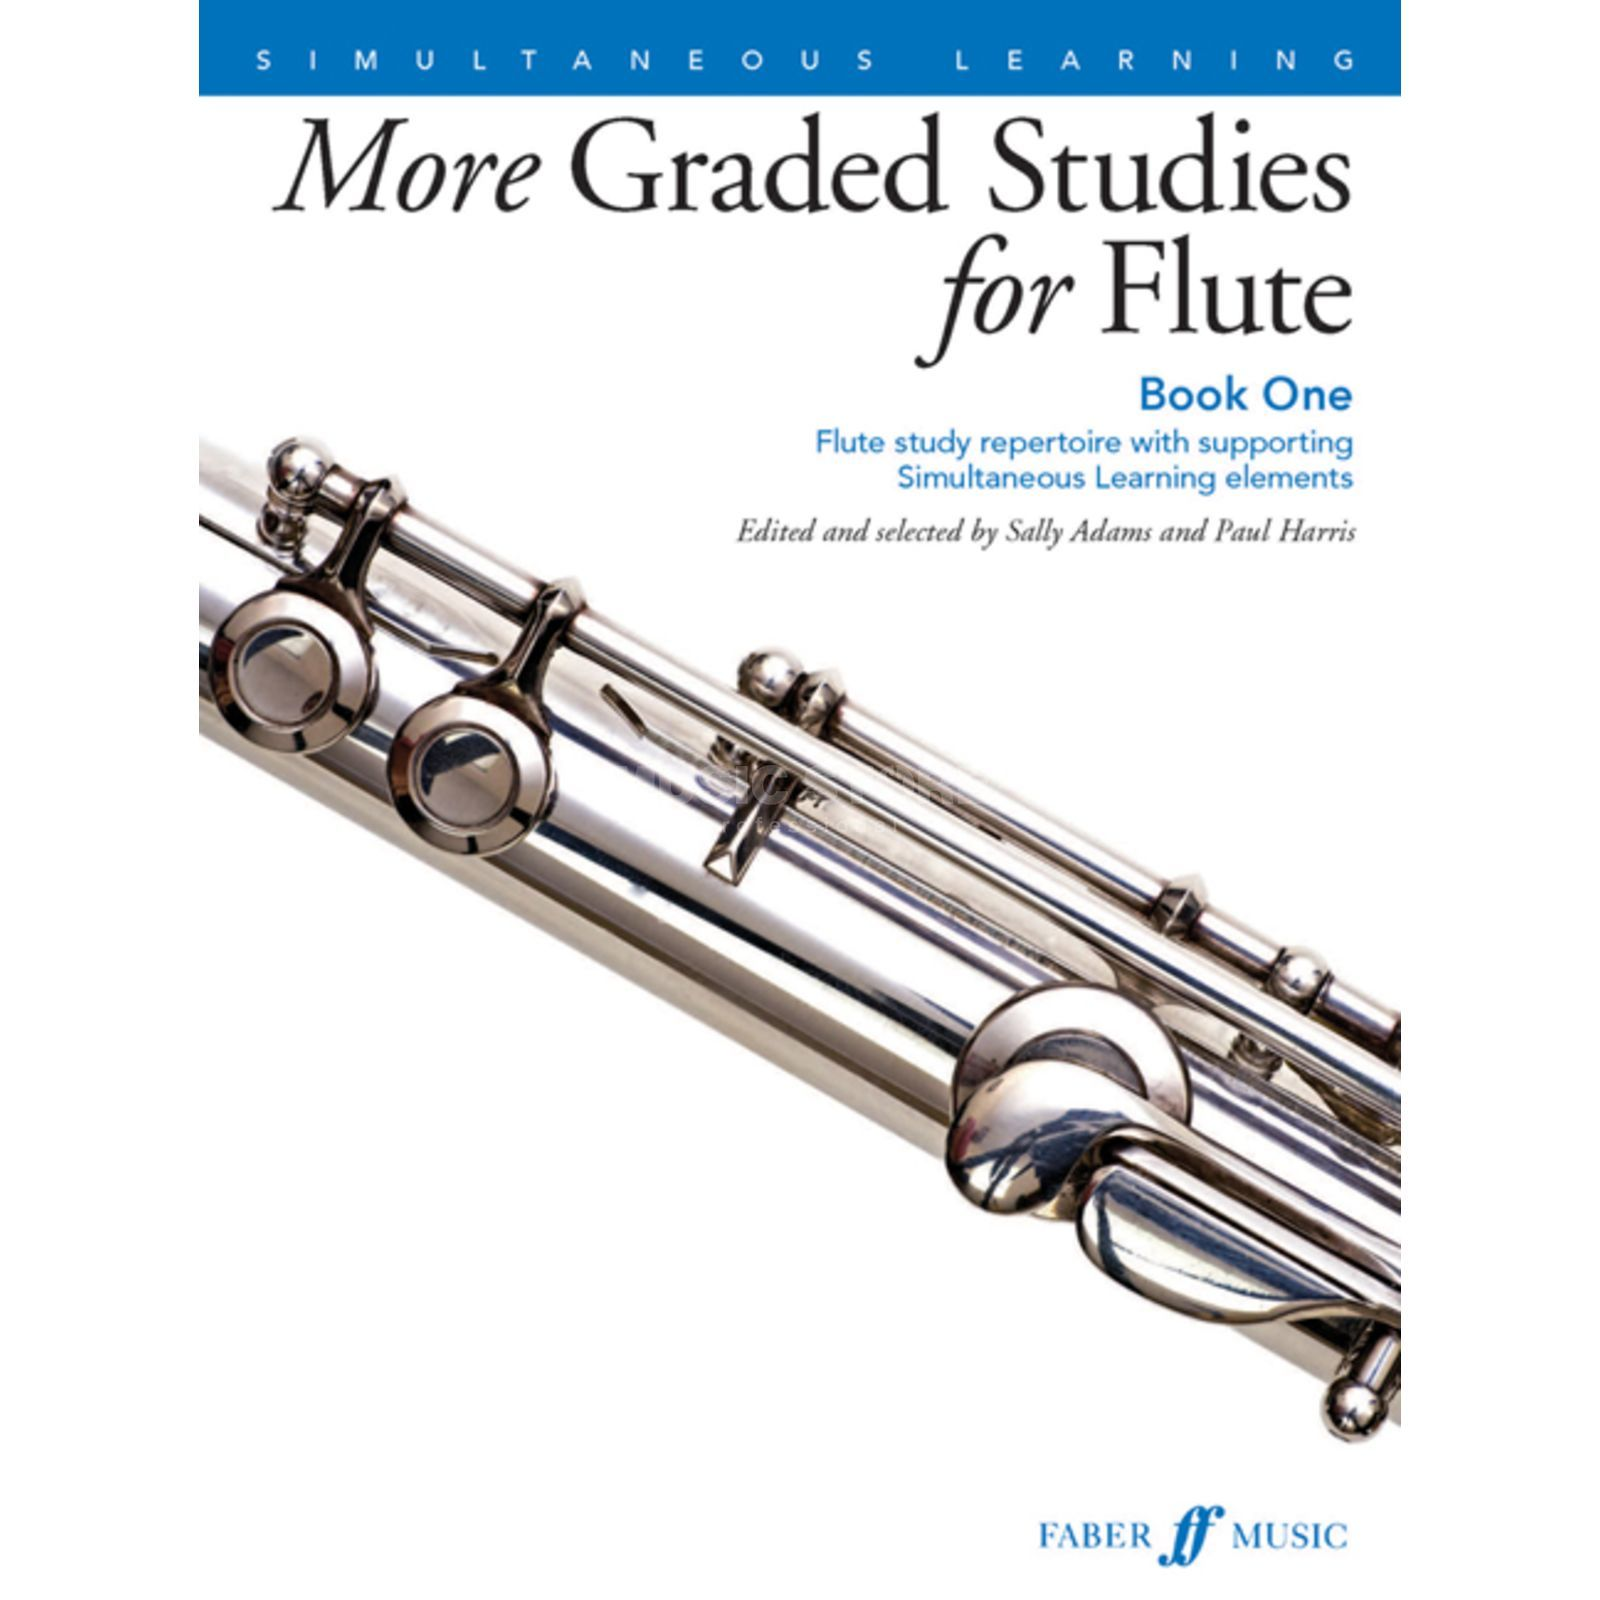 Faber Music More Graded Studies: Flute Book 1, Paul Harris, S. Adams Produktbild